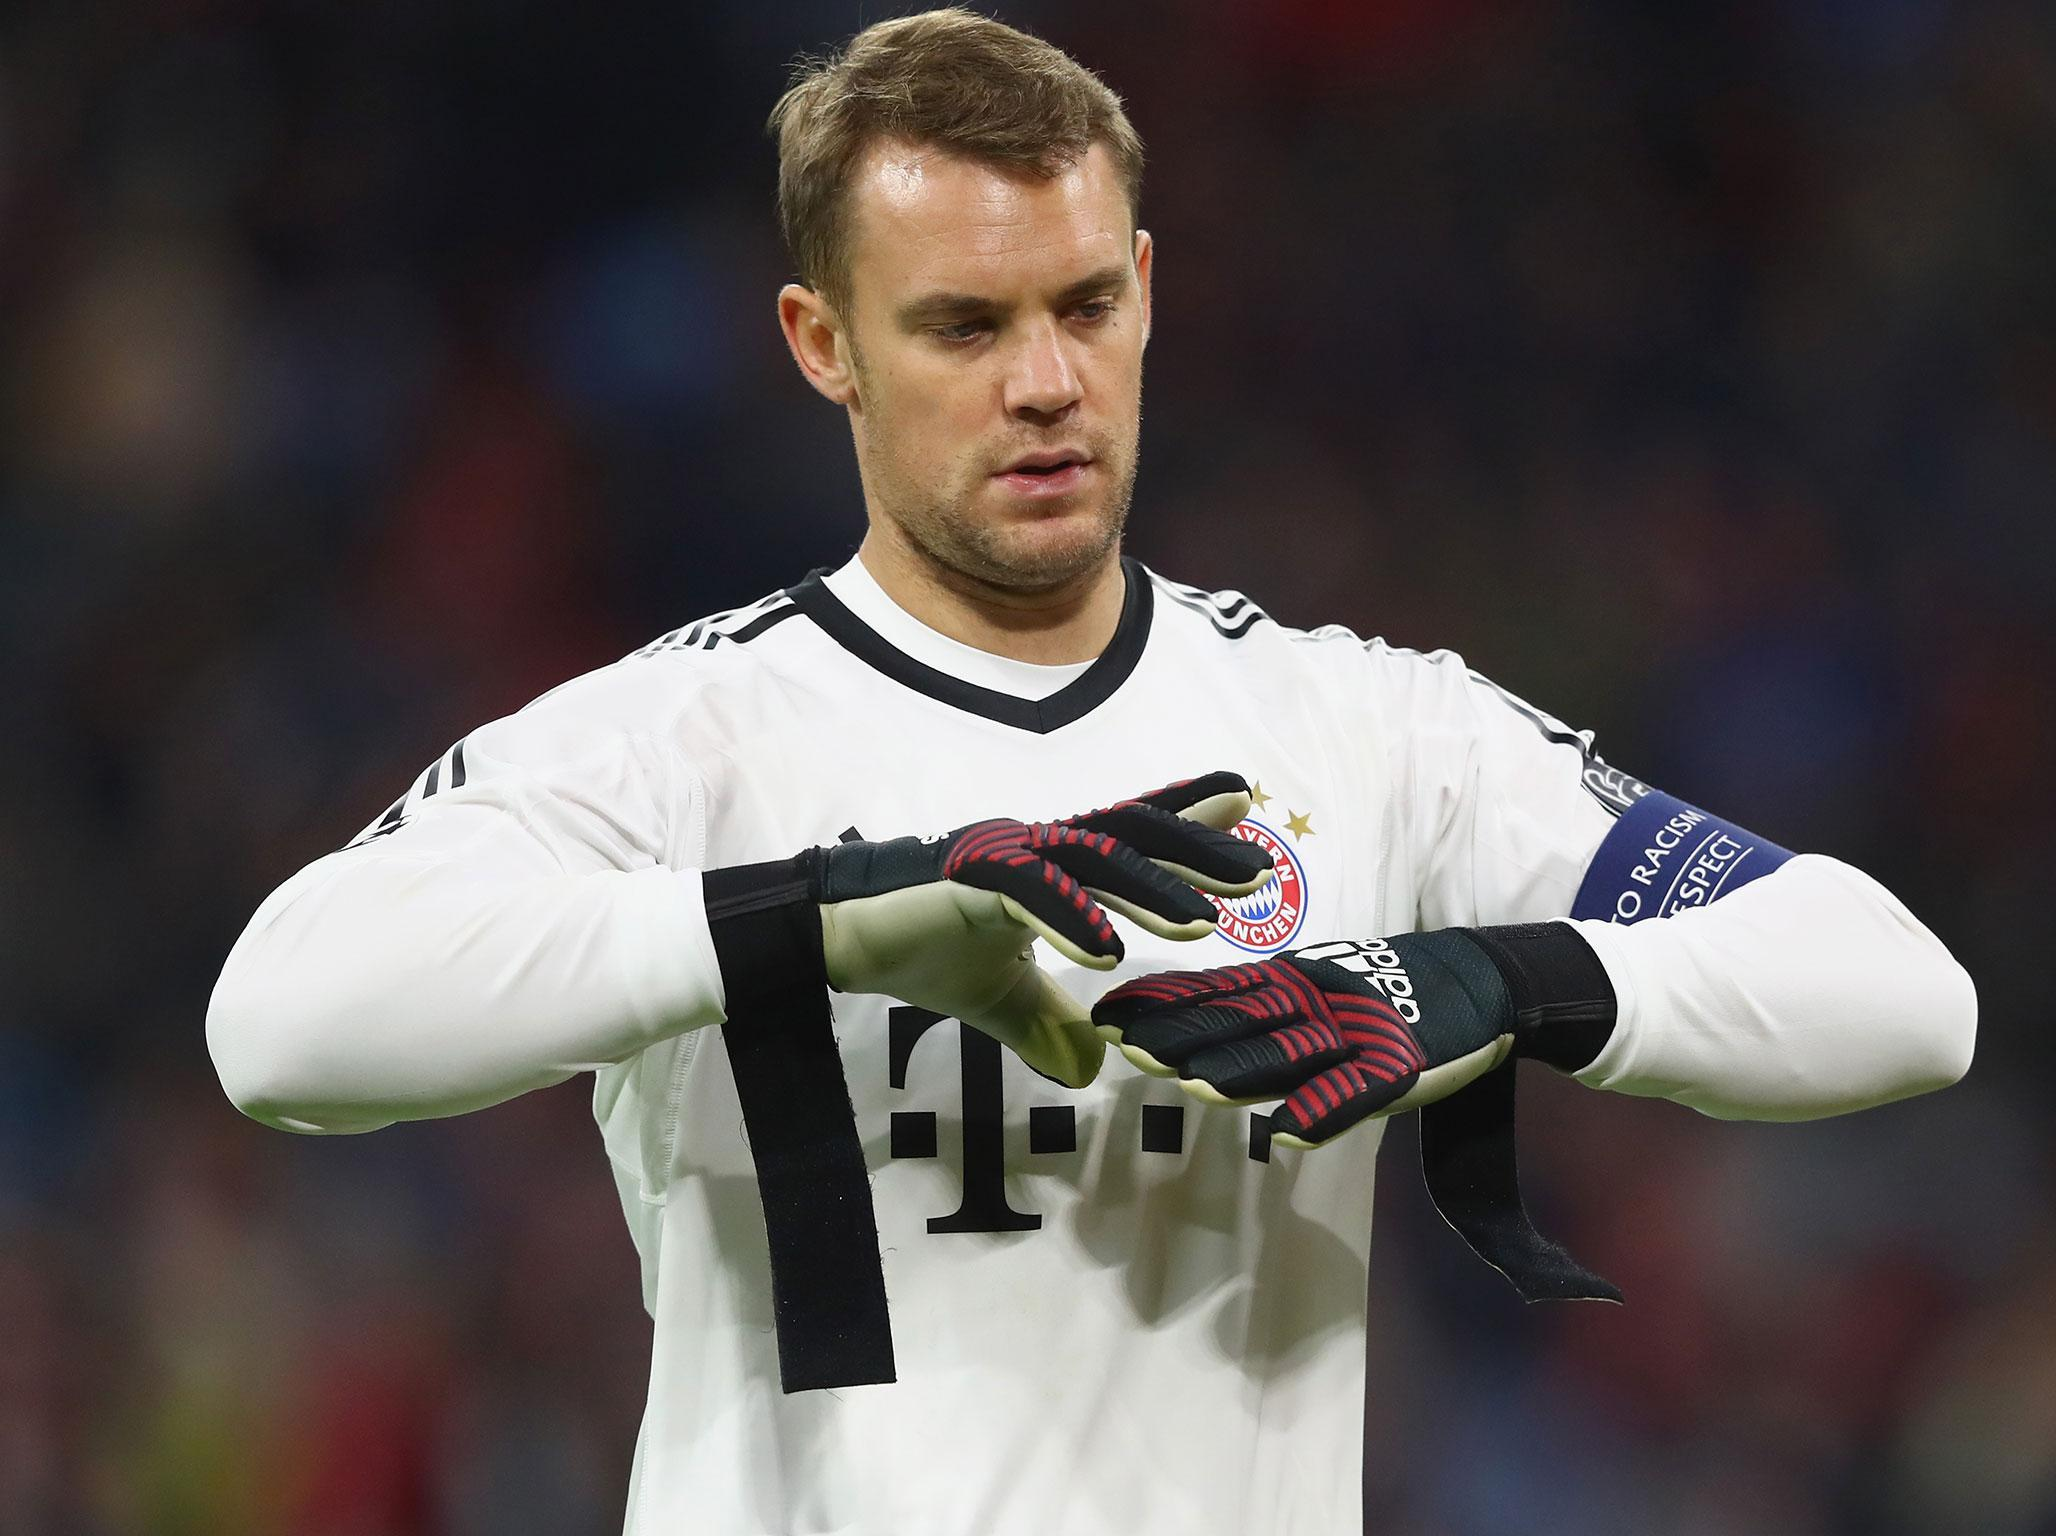 Bayern Munich s Manuel Neuer ruled out until 2018 after surgery on